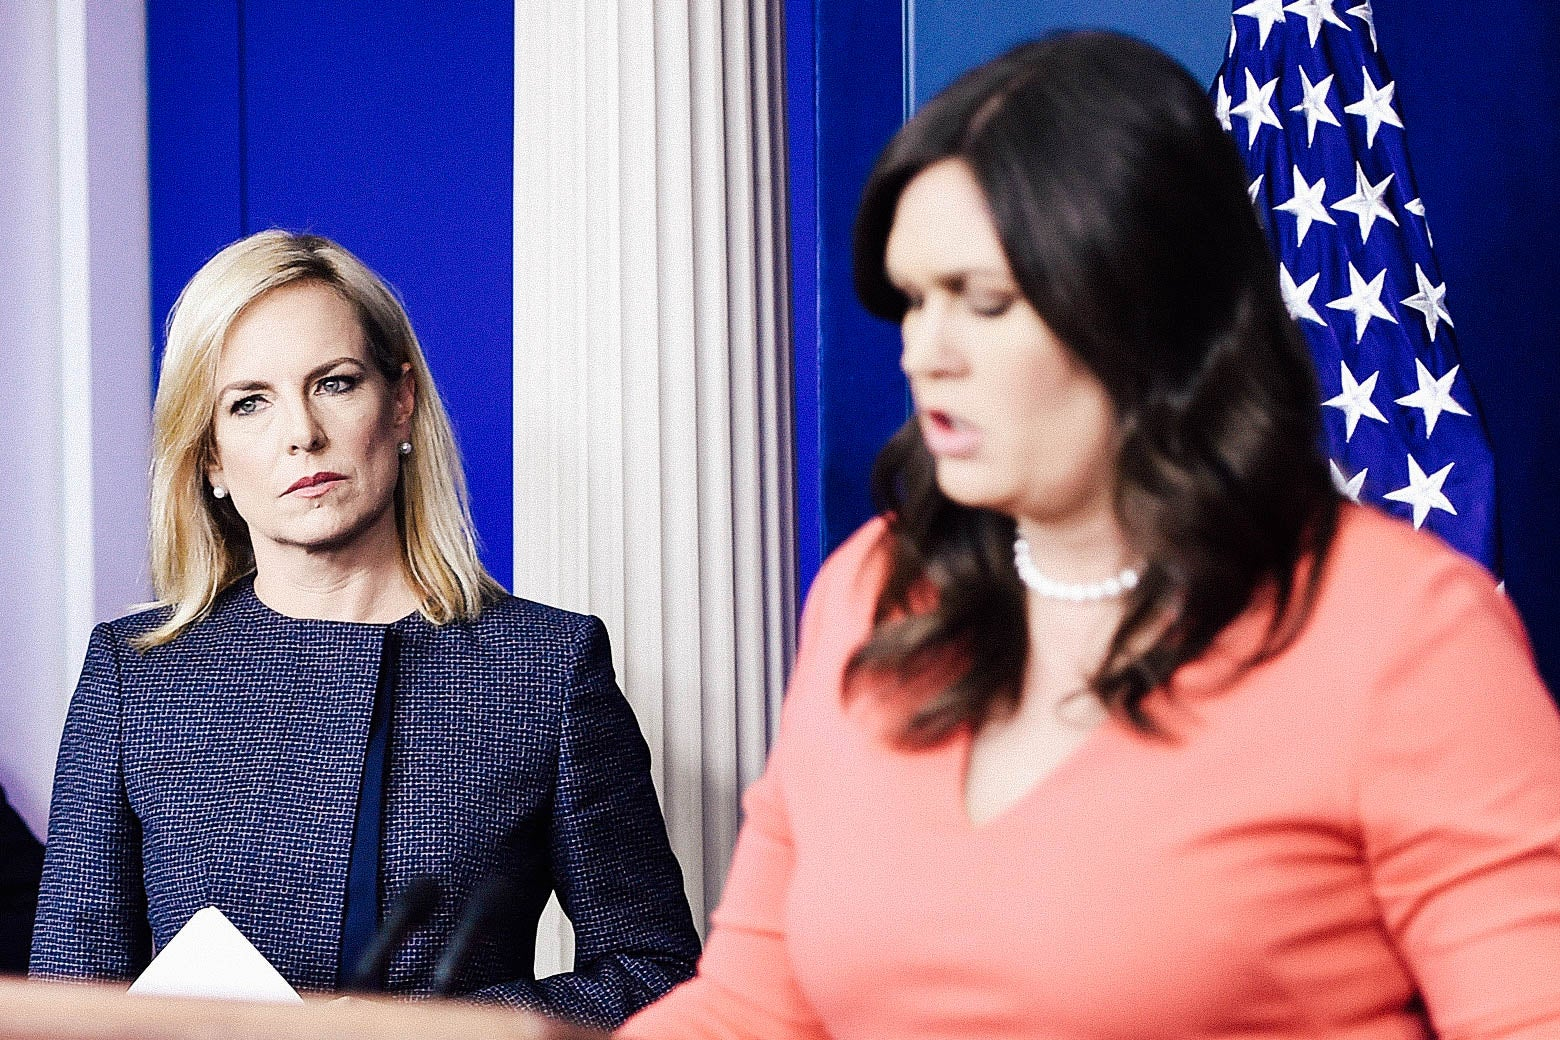 Secretary of Homeland Security Kirstjen Nielsen looks on as White House spokesperson Sarah Huckabee Sanders speaks during a press briefing at the White House.